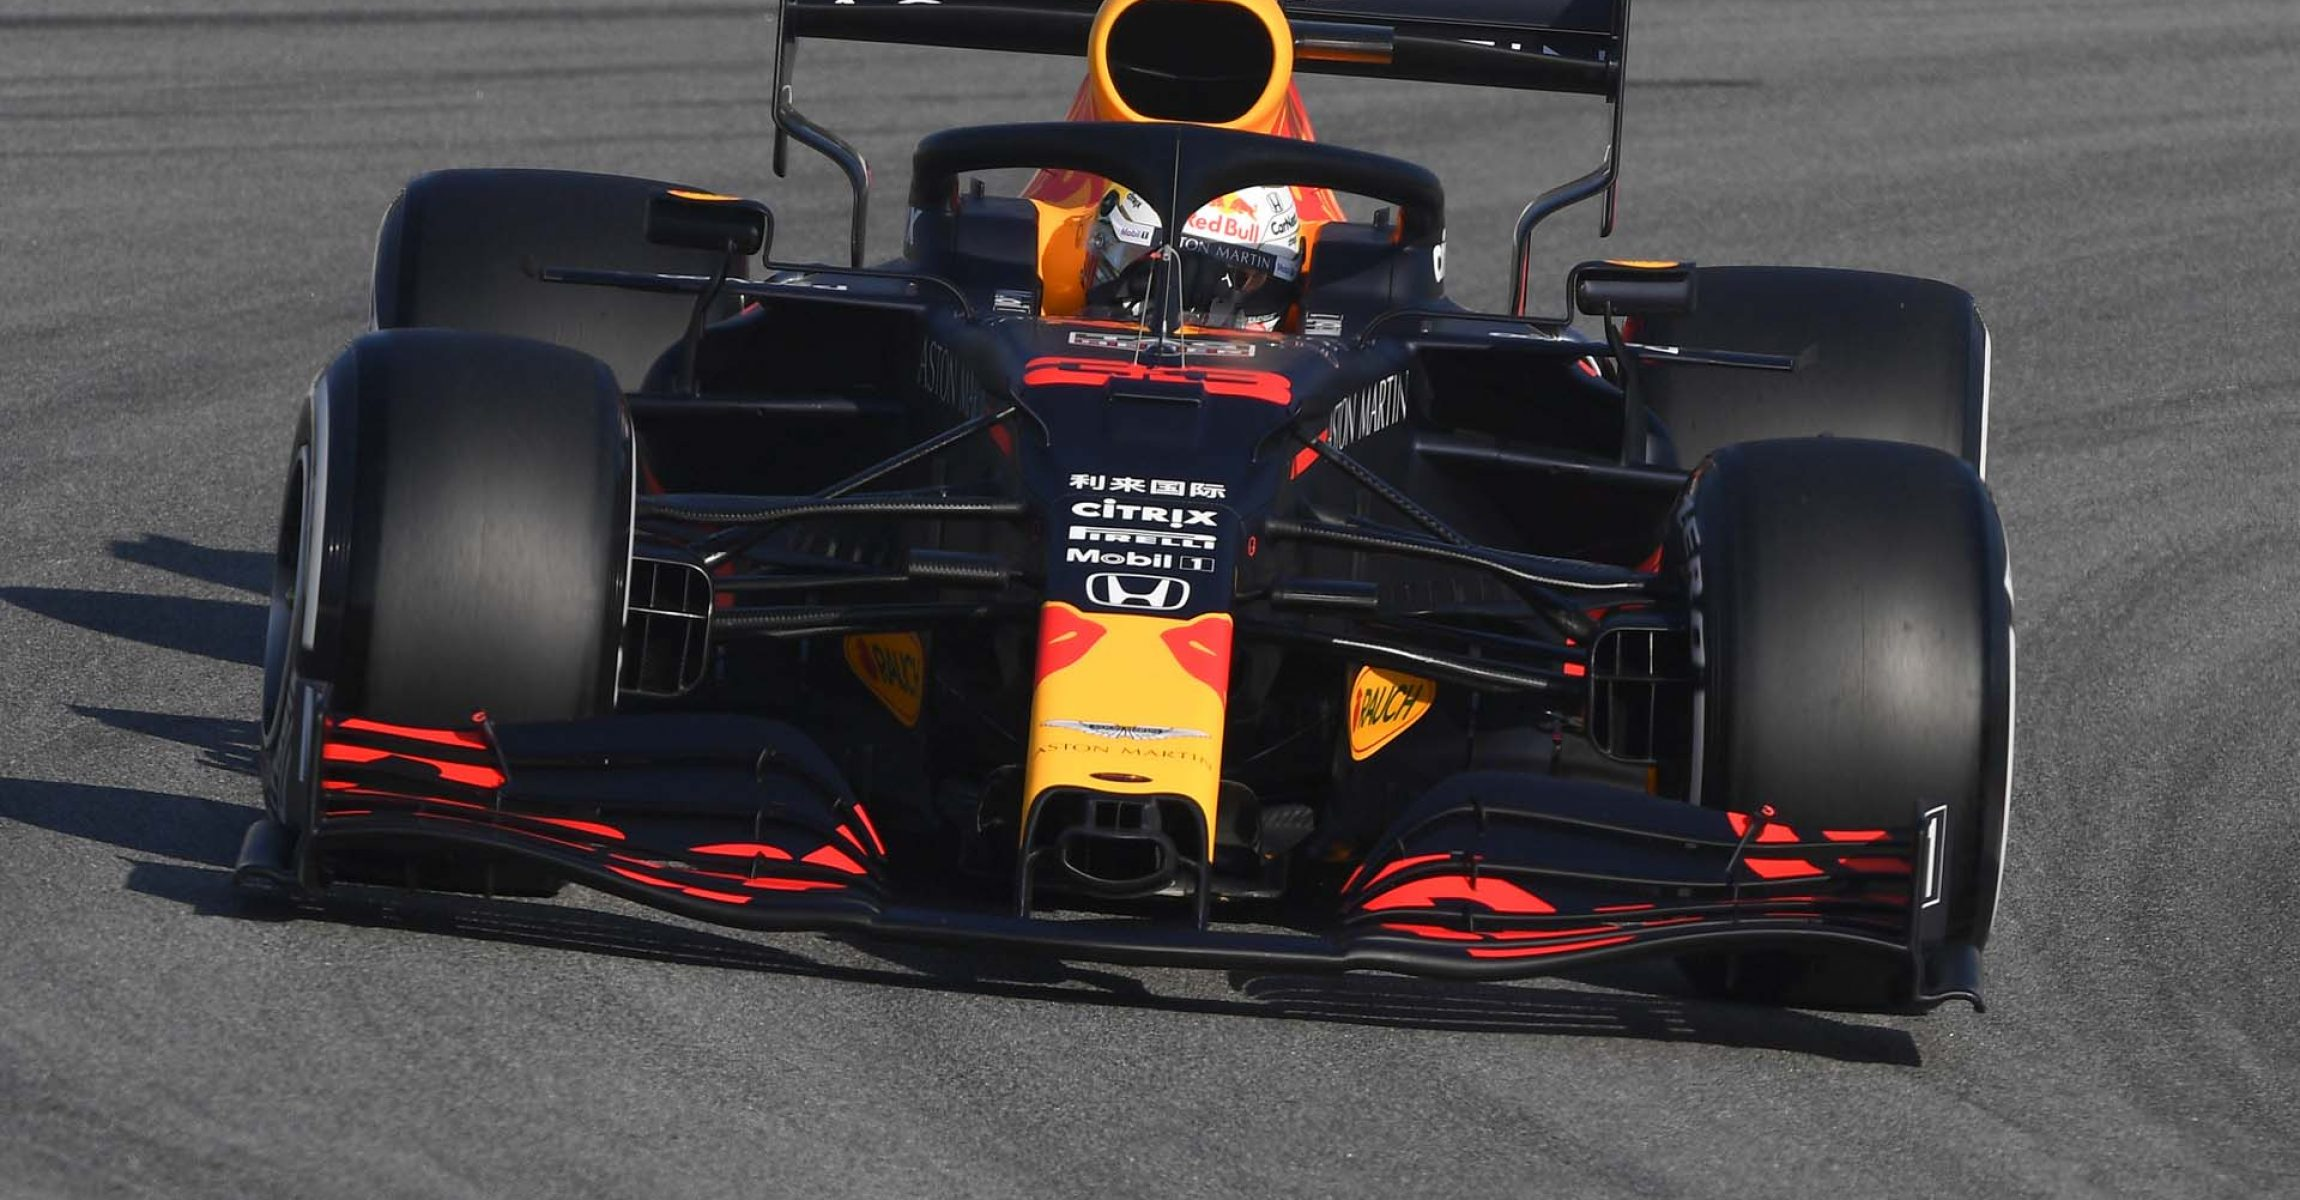 BARCELONA, SPAIN - FEBRUARY 19: Max Verstappen of the Netherlands driving the (33) Aston Martin Red Bull Racing RB16 on track during day one of Formula 1 Winter Testing at Circuit de Barcelona-Catalunya on February 19, 2020 in Barcelona, Spain. (Photo by Rudy Carezzevoli/Getty Images) // Getty Images / Red Bull Content Pool // AP-235KDNV191W11 // Usage for editorial use only //